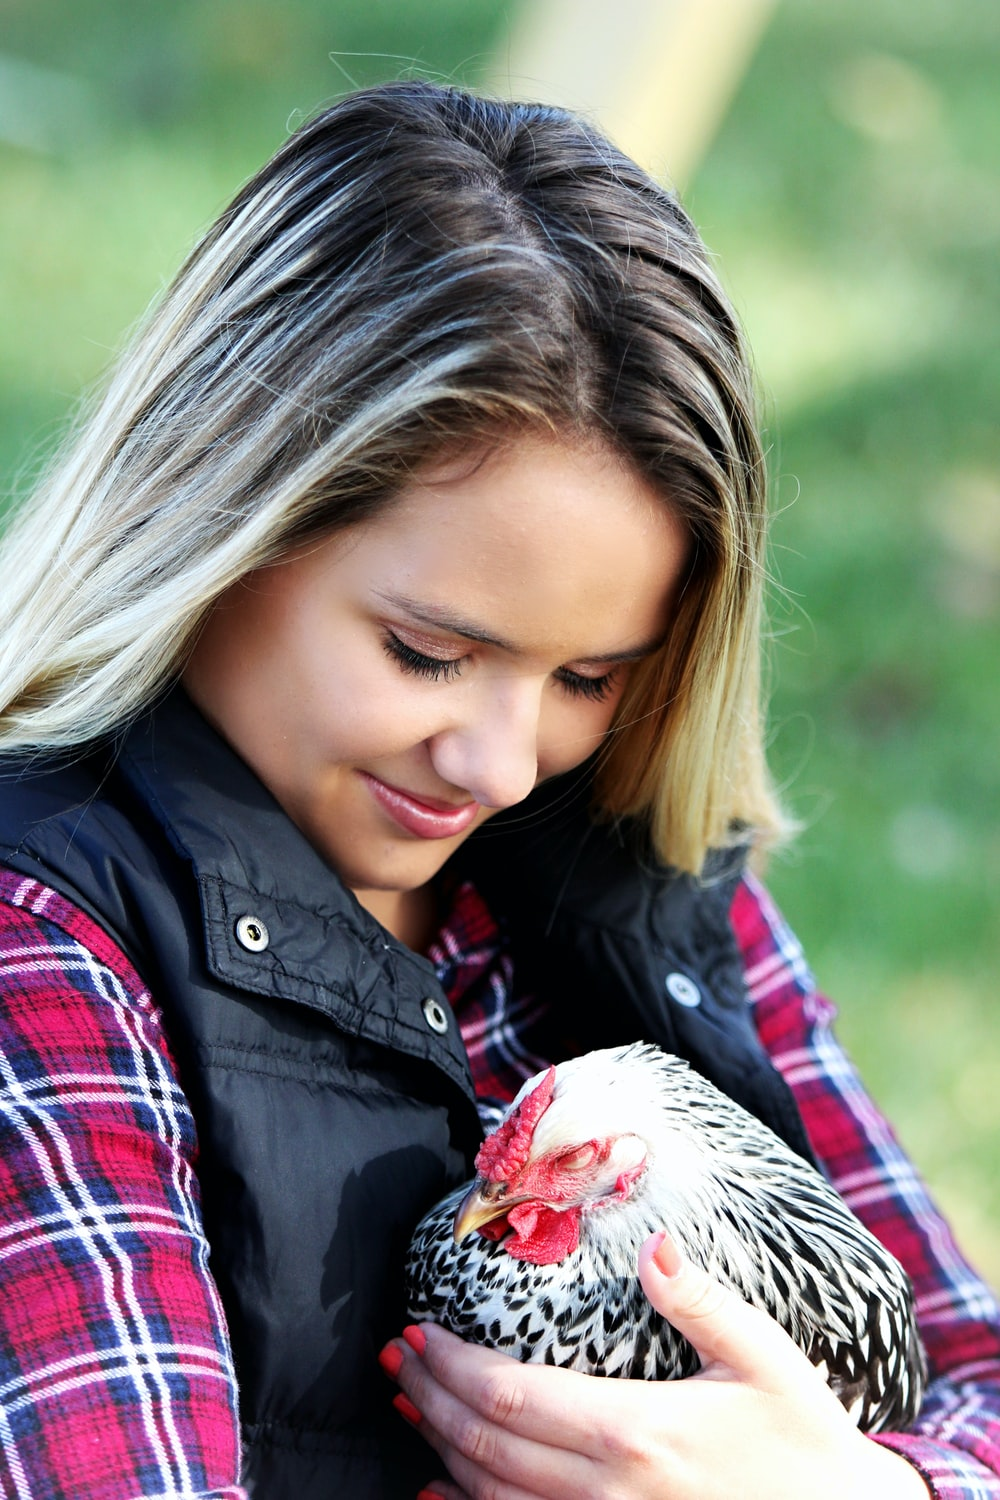 woman in black and red shirt holding white and white chicken